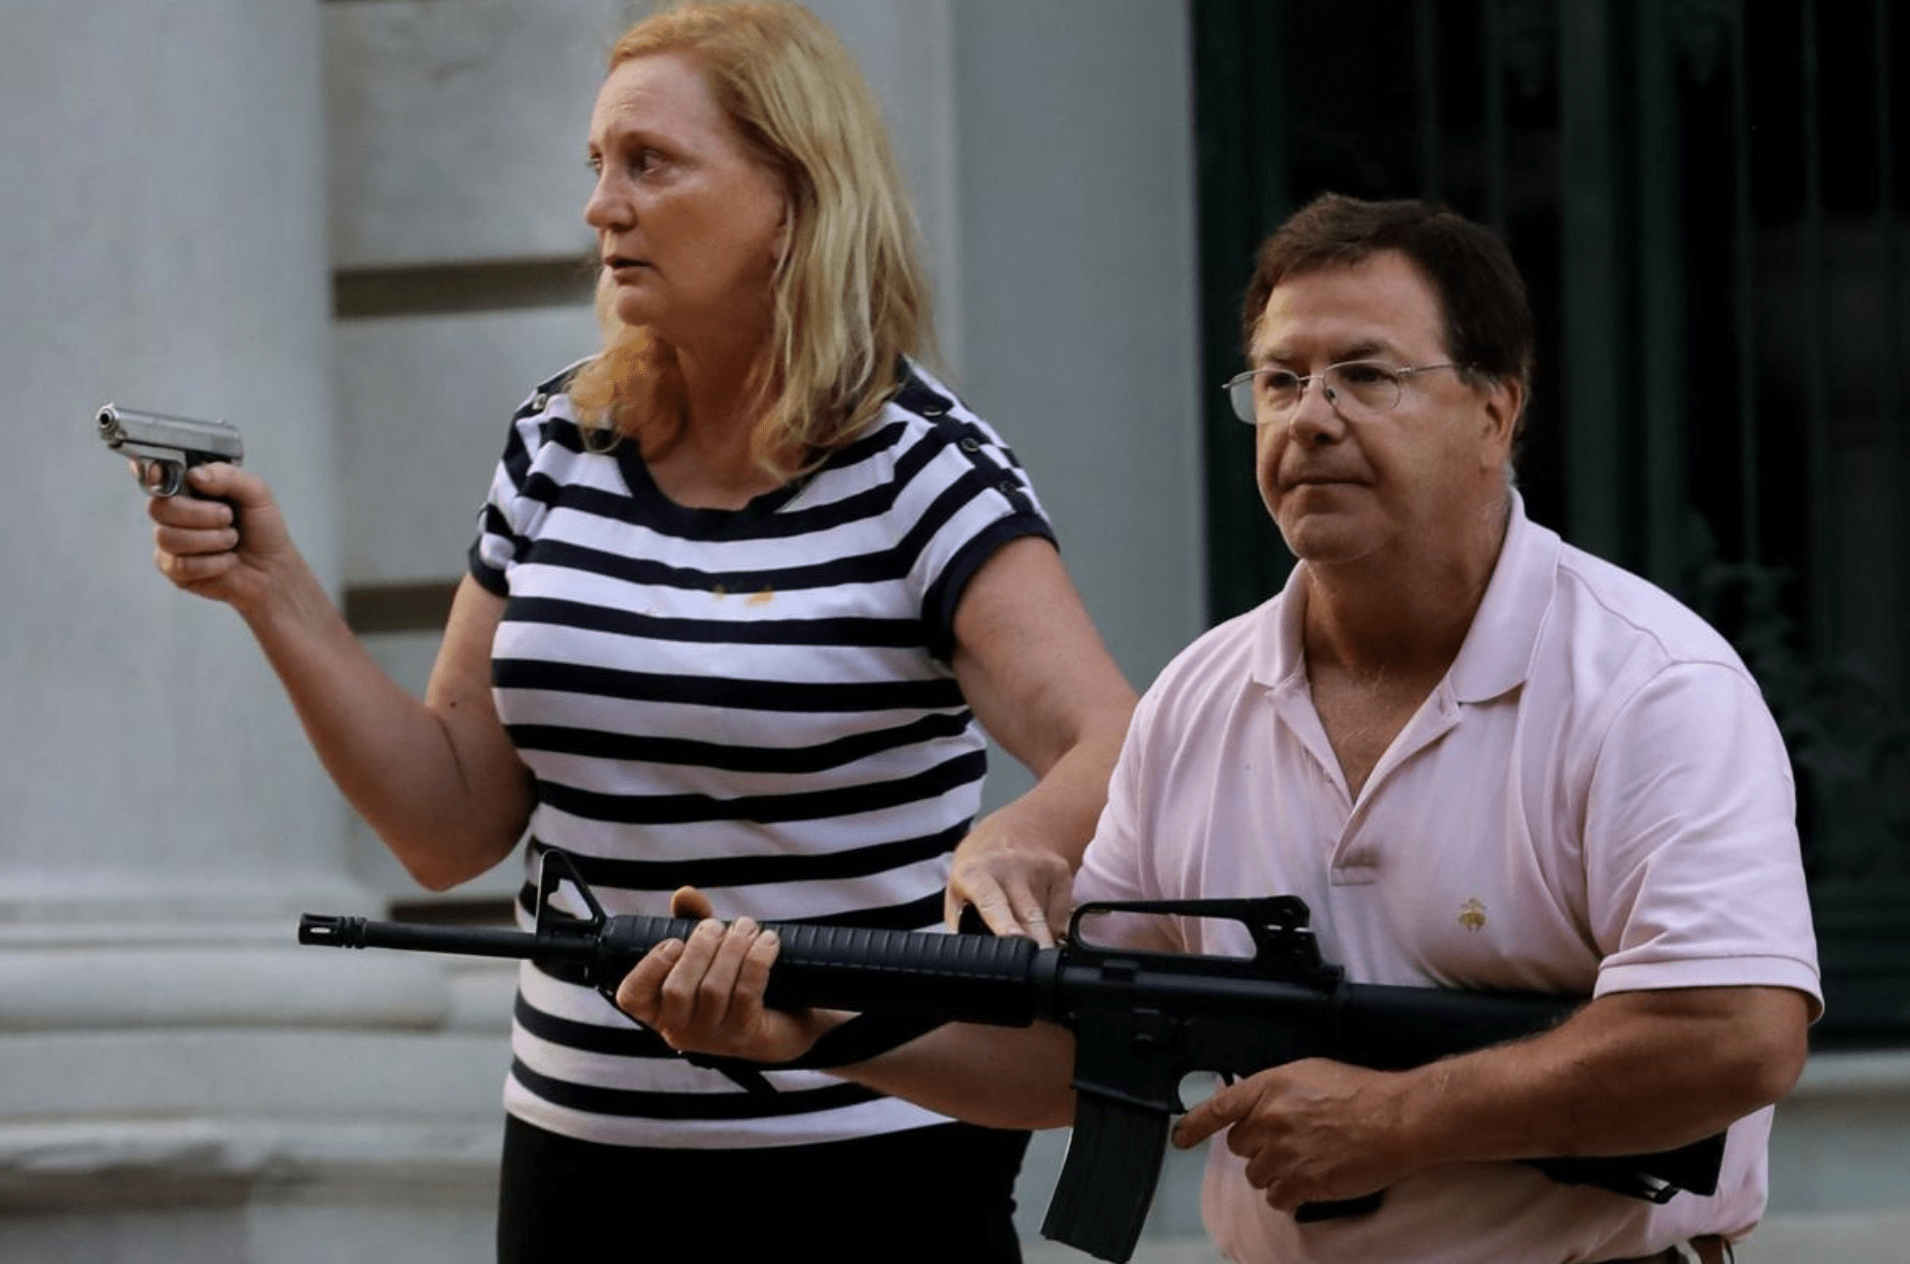 St. Louis Couple Who Pointed Guns At Protesters Have Been Charged With A Felony